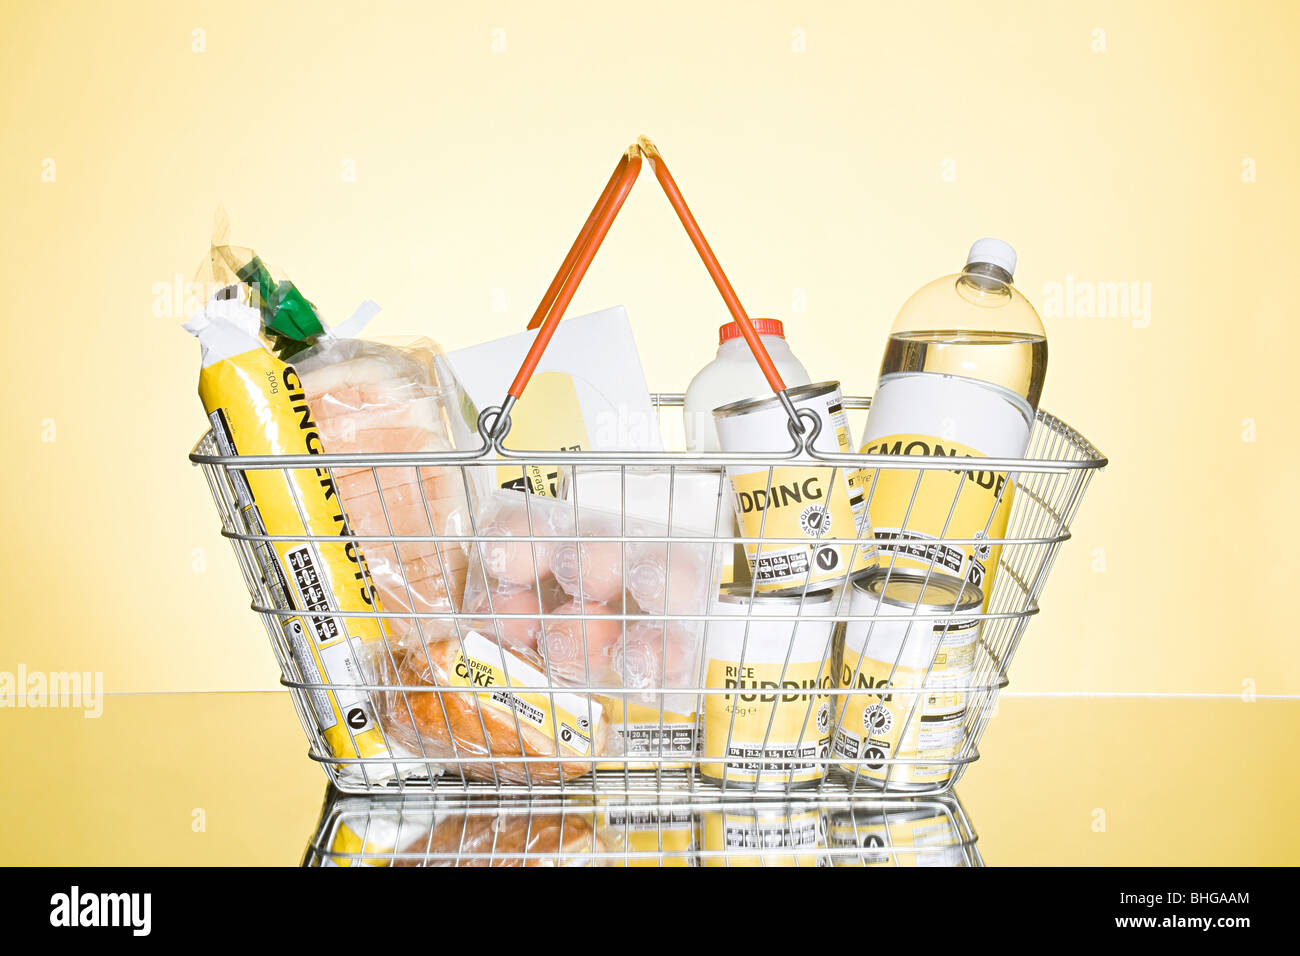 Basket of basic groceries - Stock Image